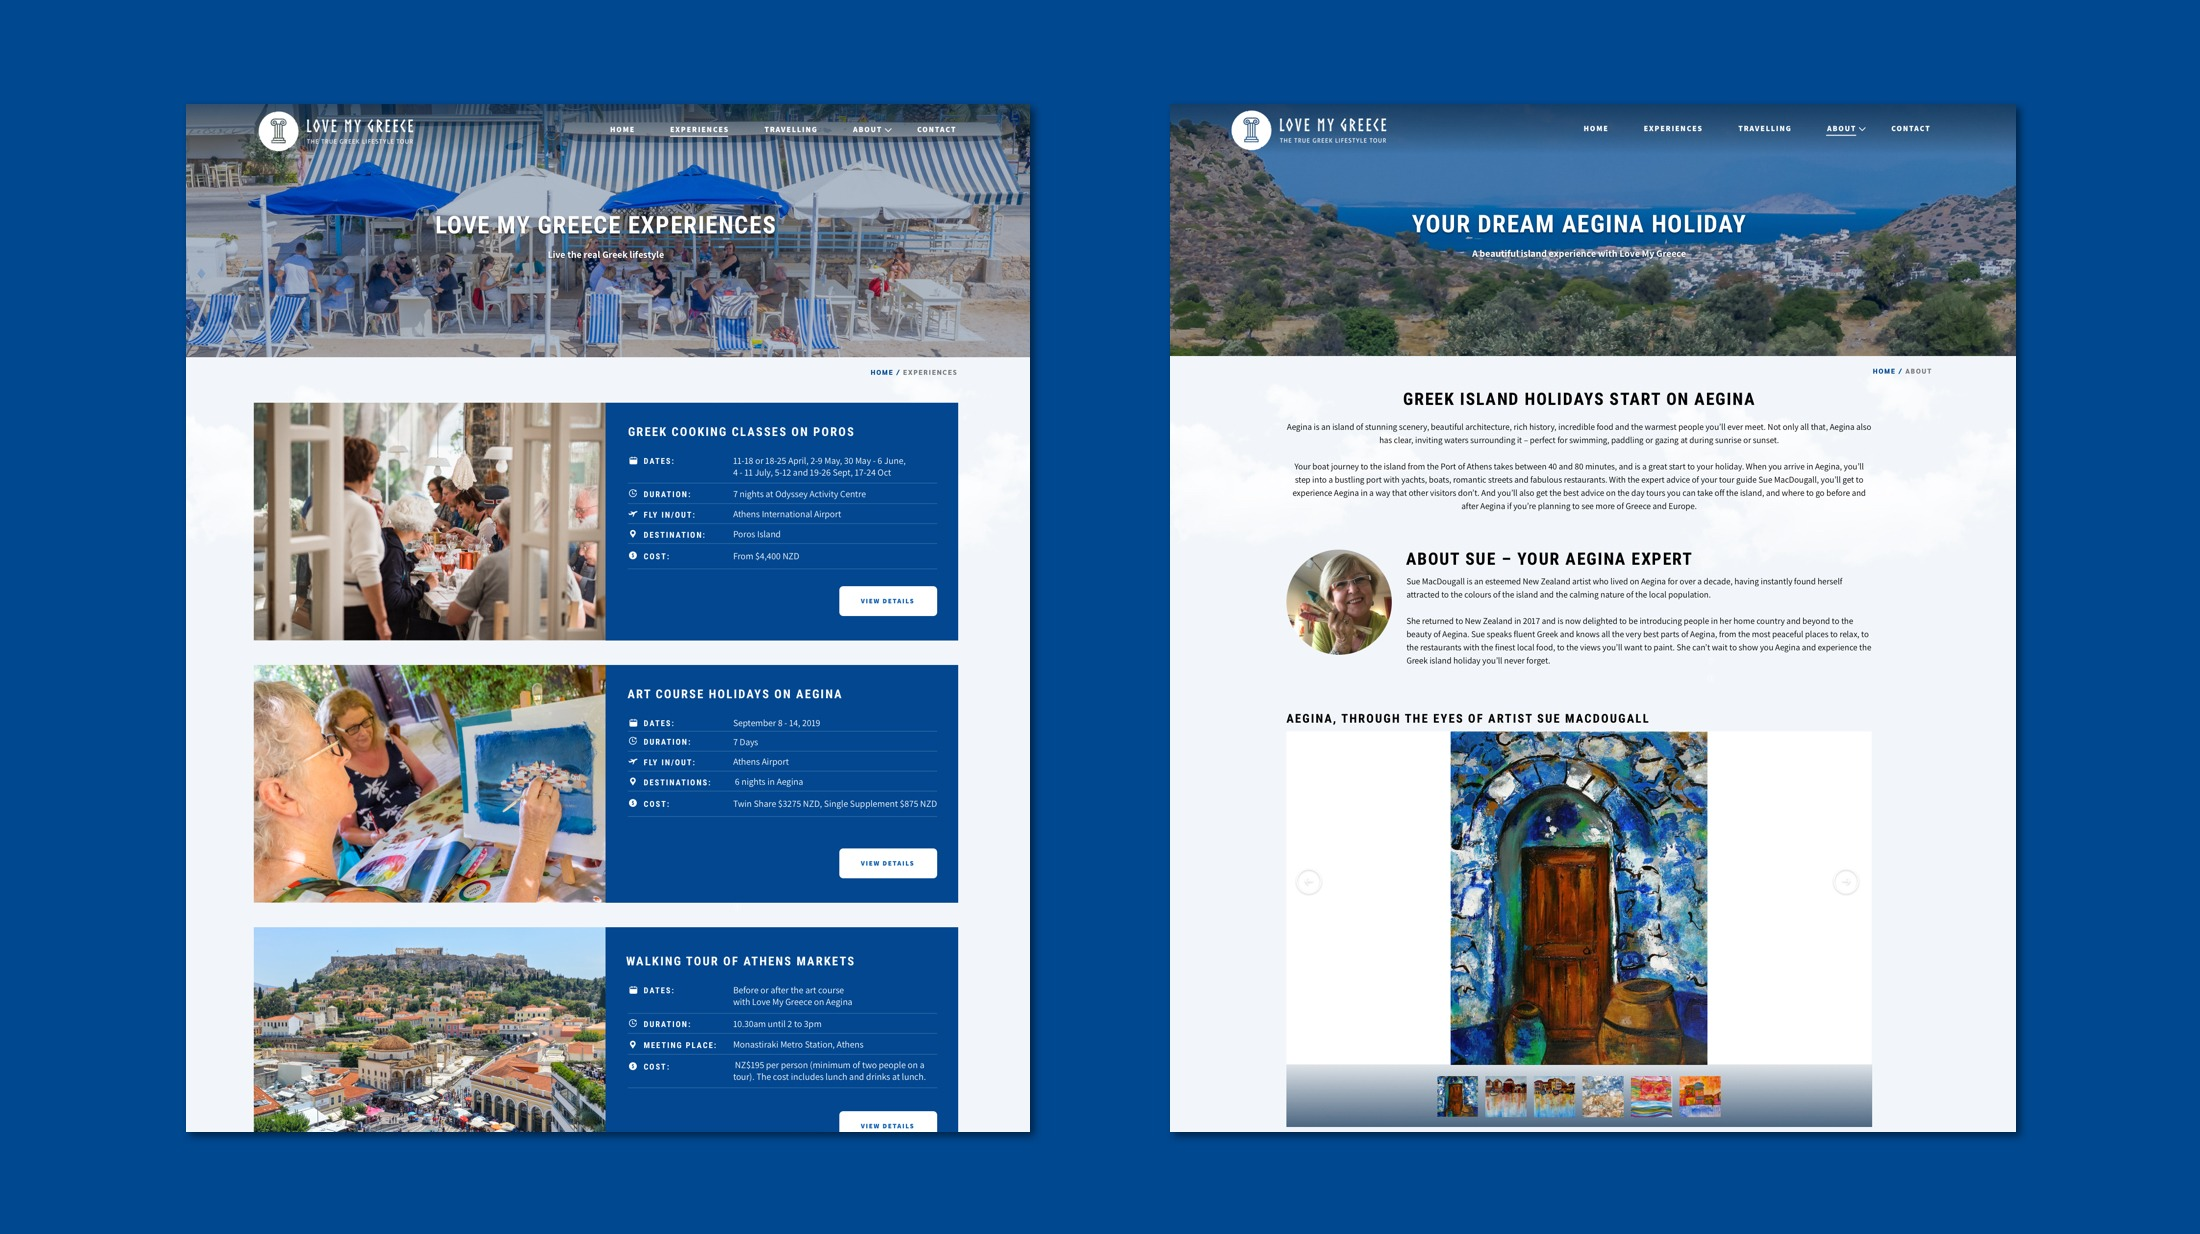 Website Development - Love My Greece